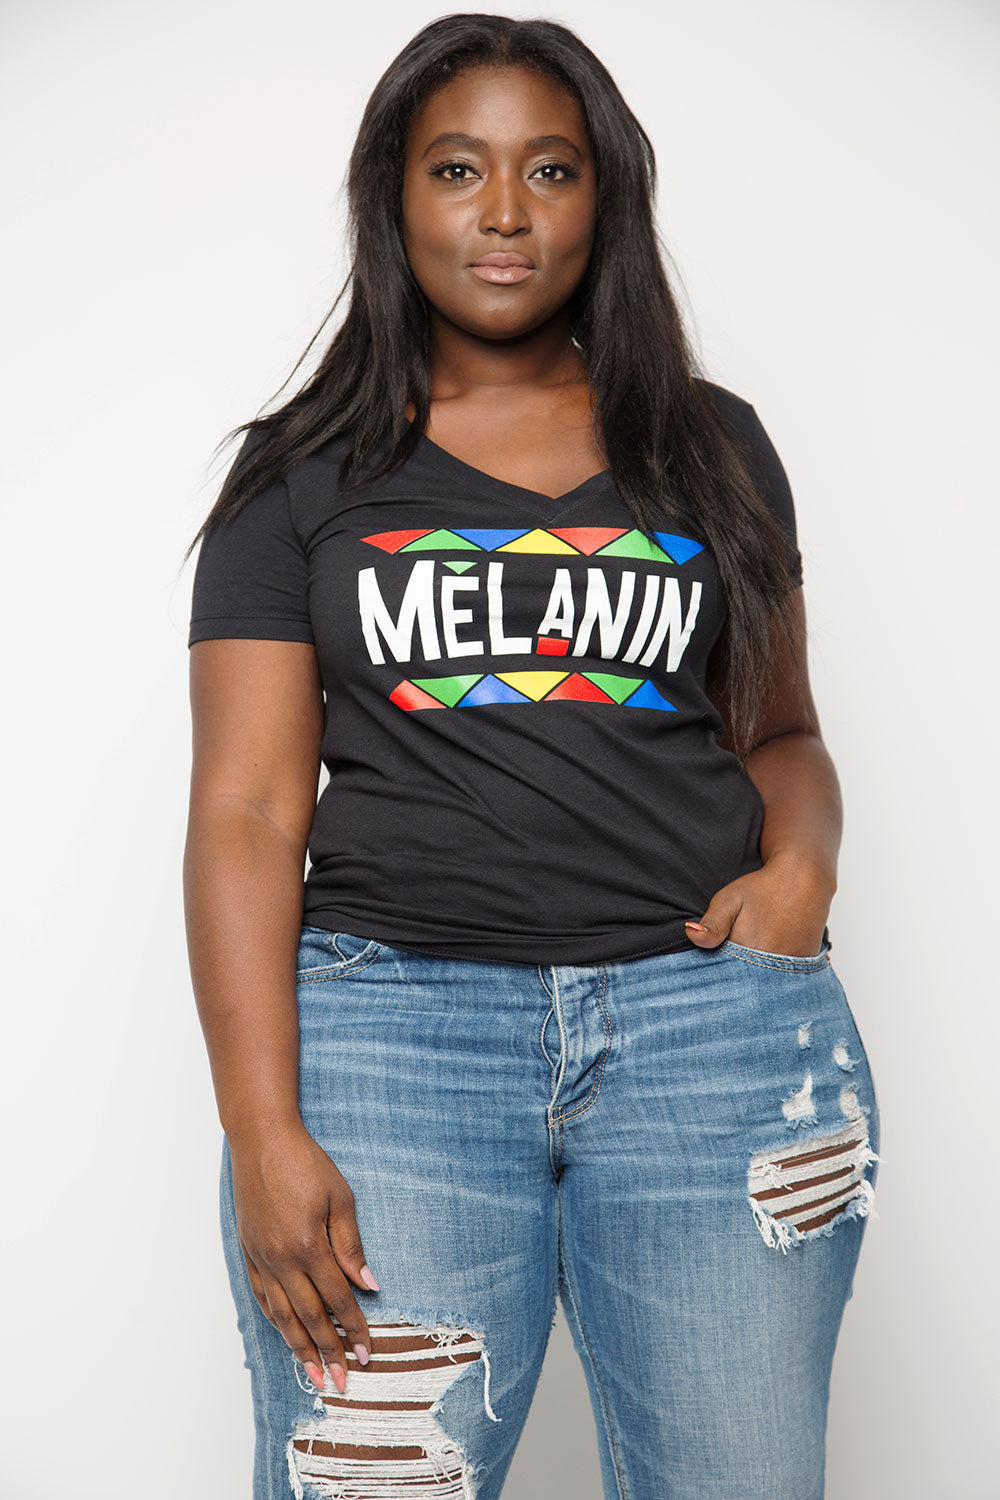 Melanin V-Neck Tee in Black - Trunk Series, LLC